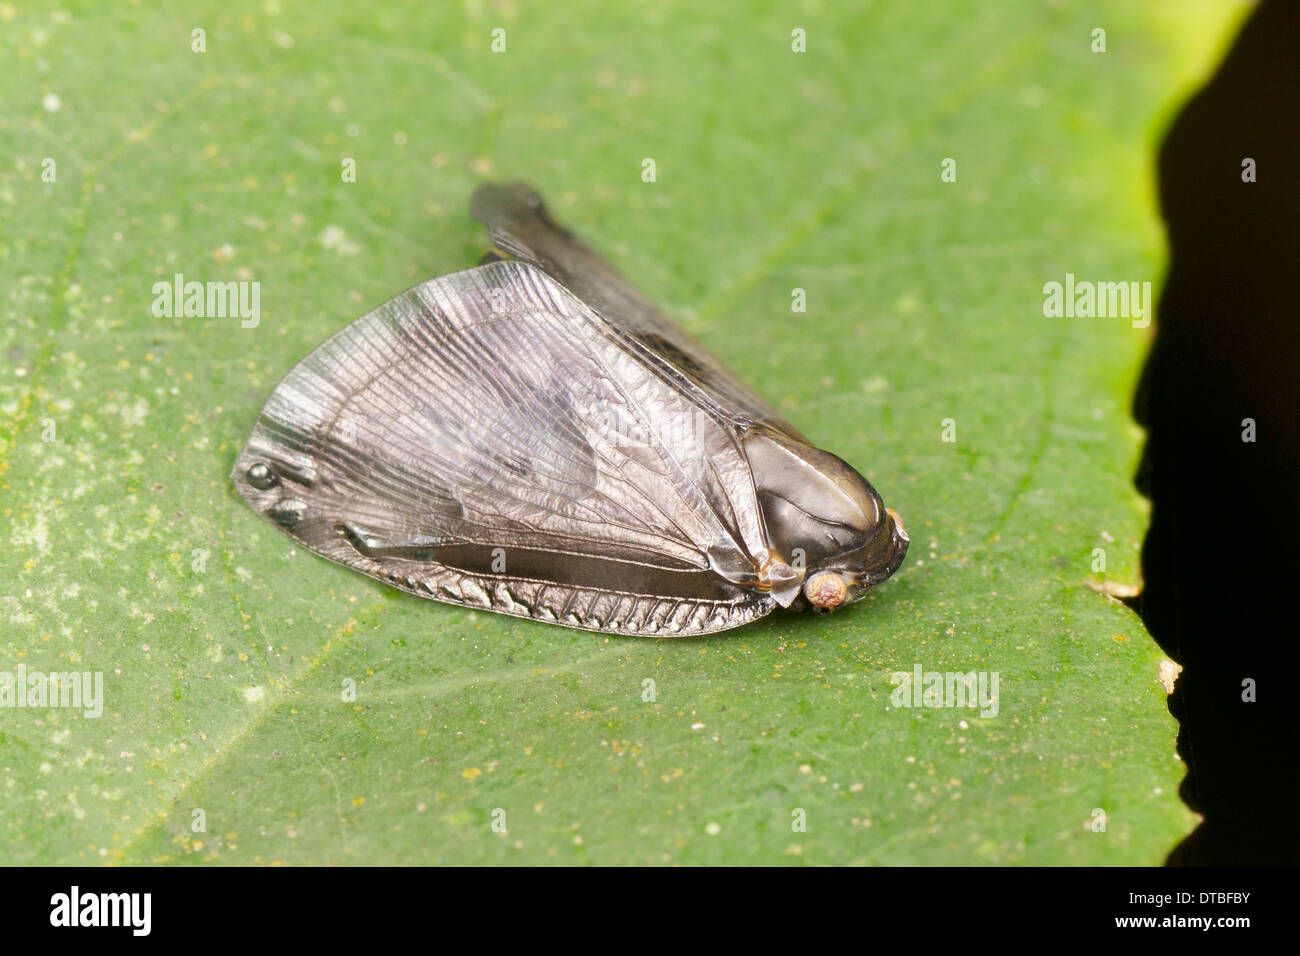 Planthopper (Ricaniidae). The family Ricaniidae is a group of hemipteran insects, containing over 40 genera and 400 species worl - Stock Image